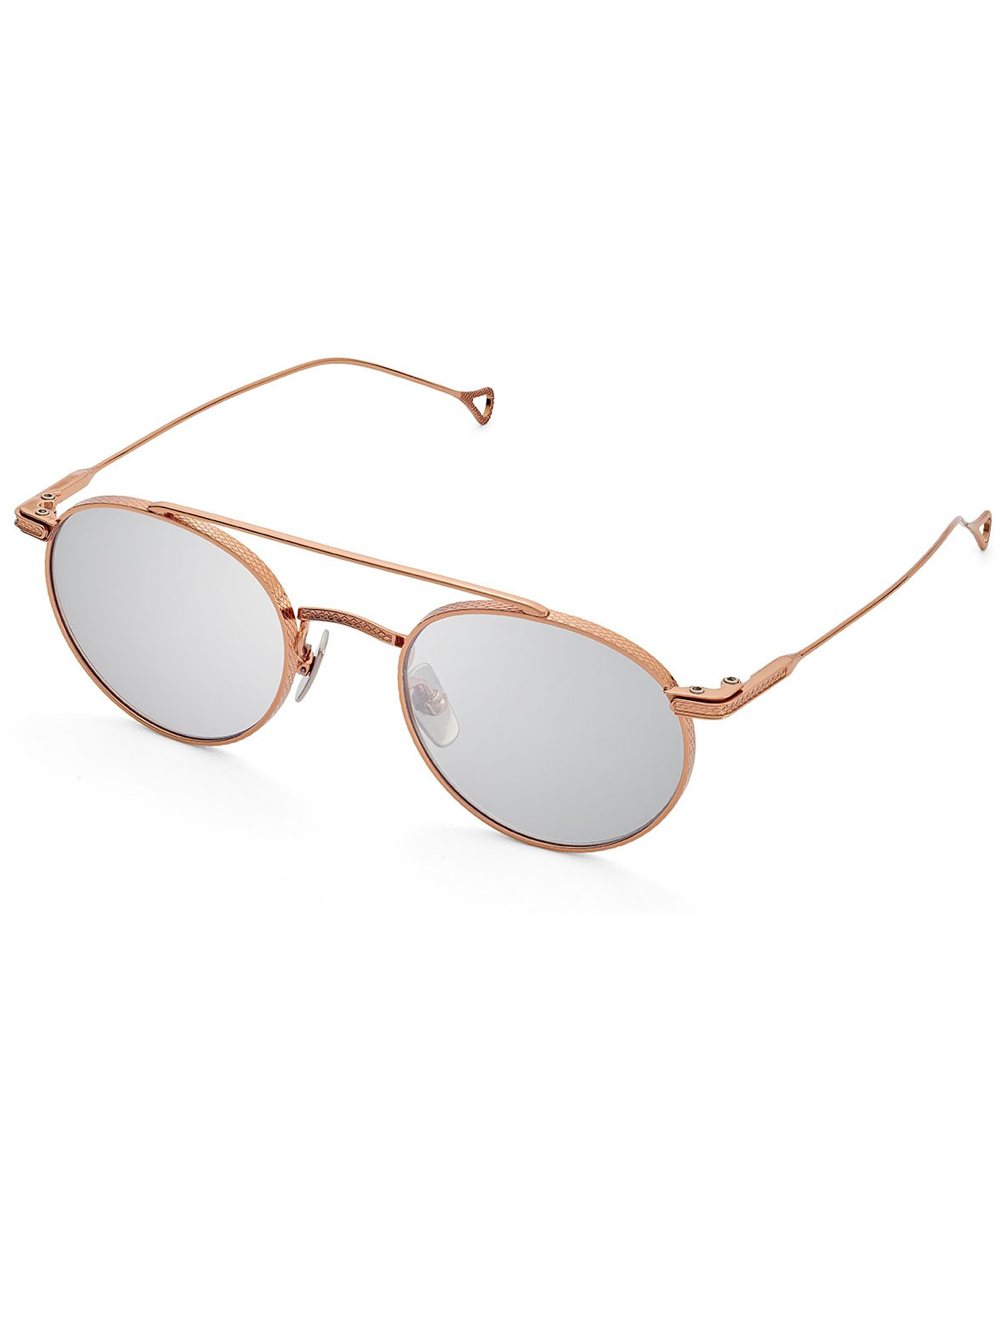 0efc1940f53 DITA JOURNEY-ROSE GOLD-24001-D-RGD-49